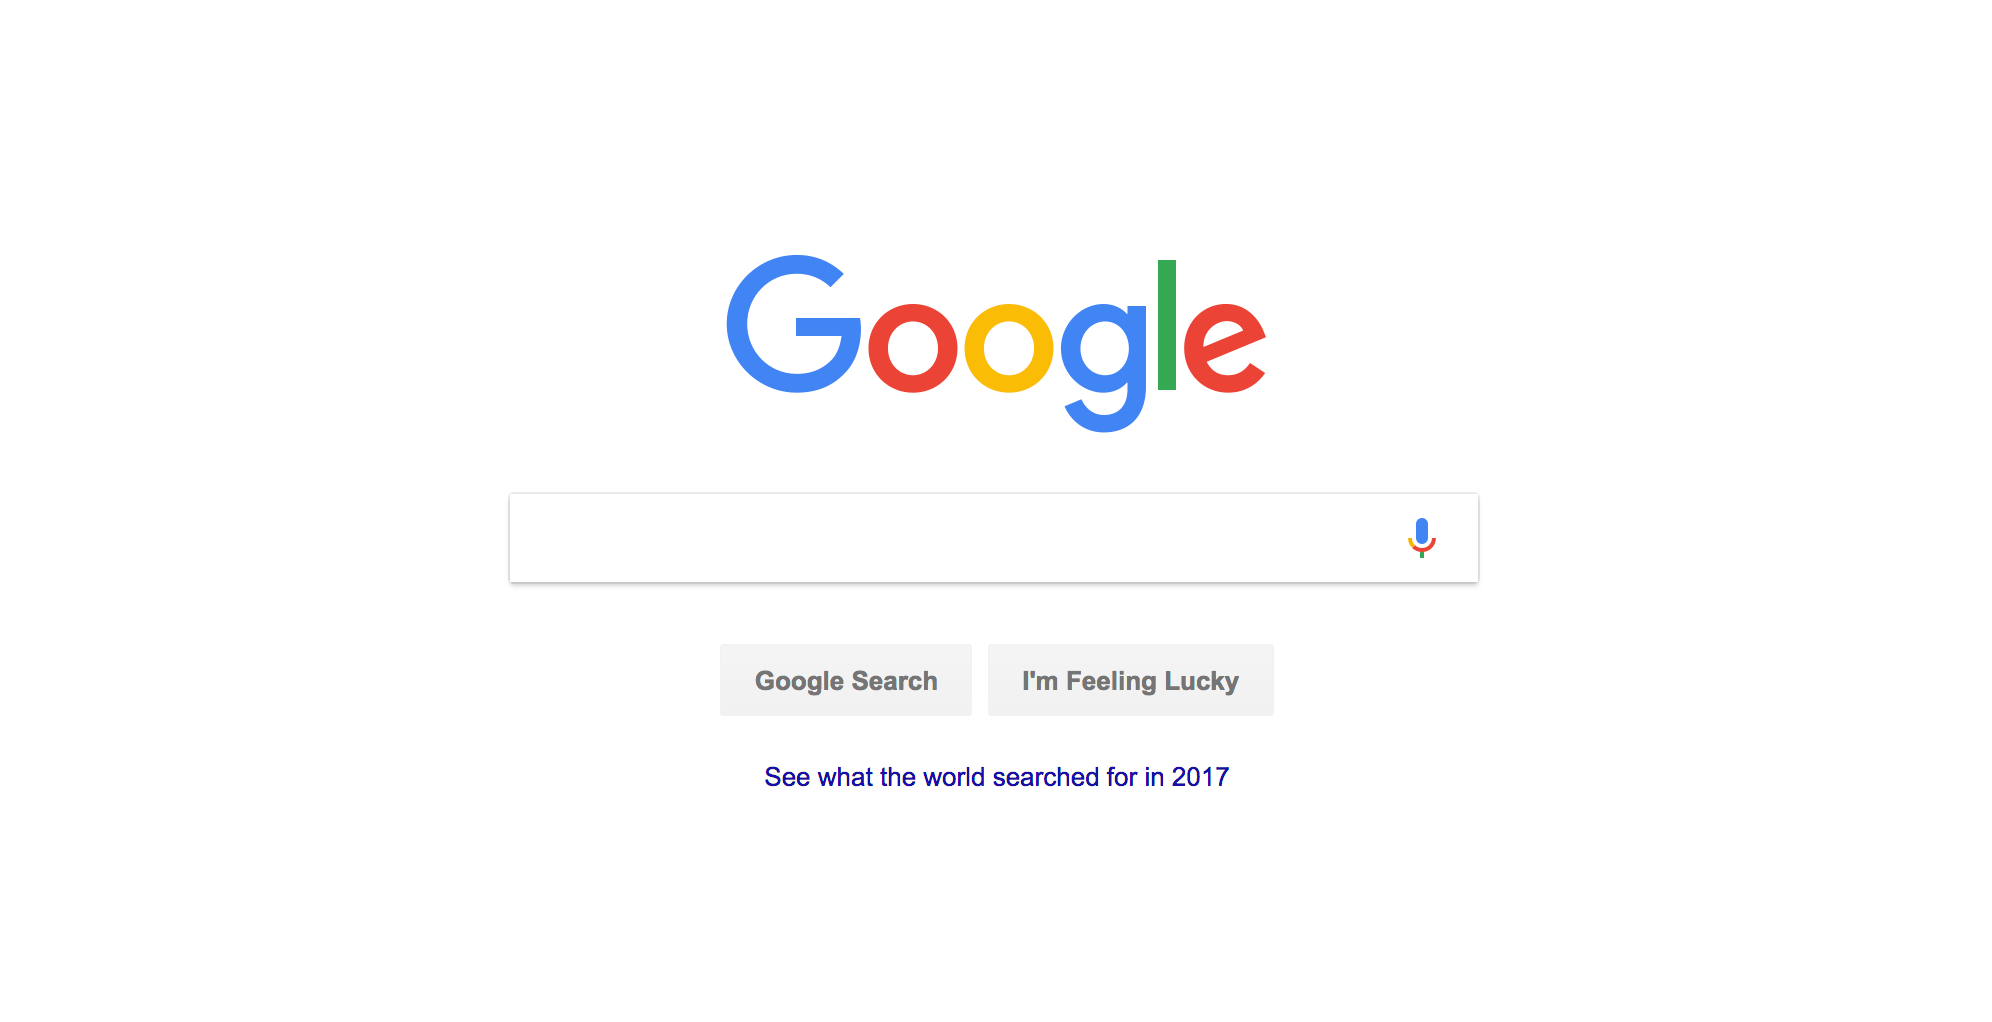 Example of a shadow effect in Google's design